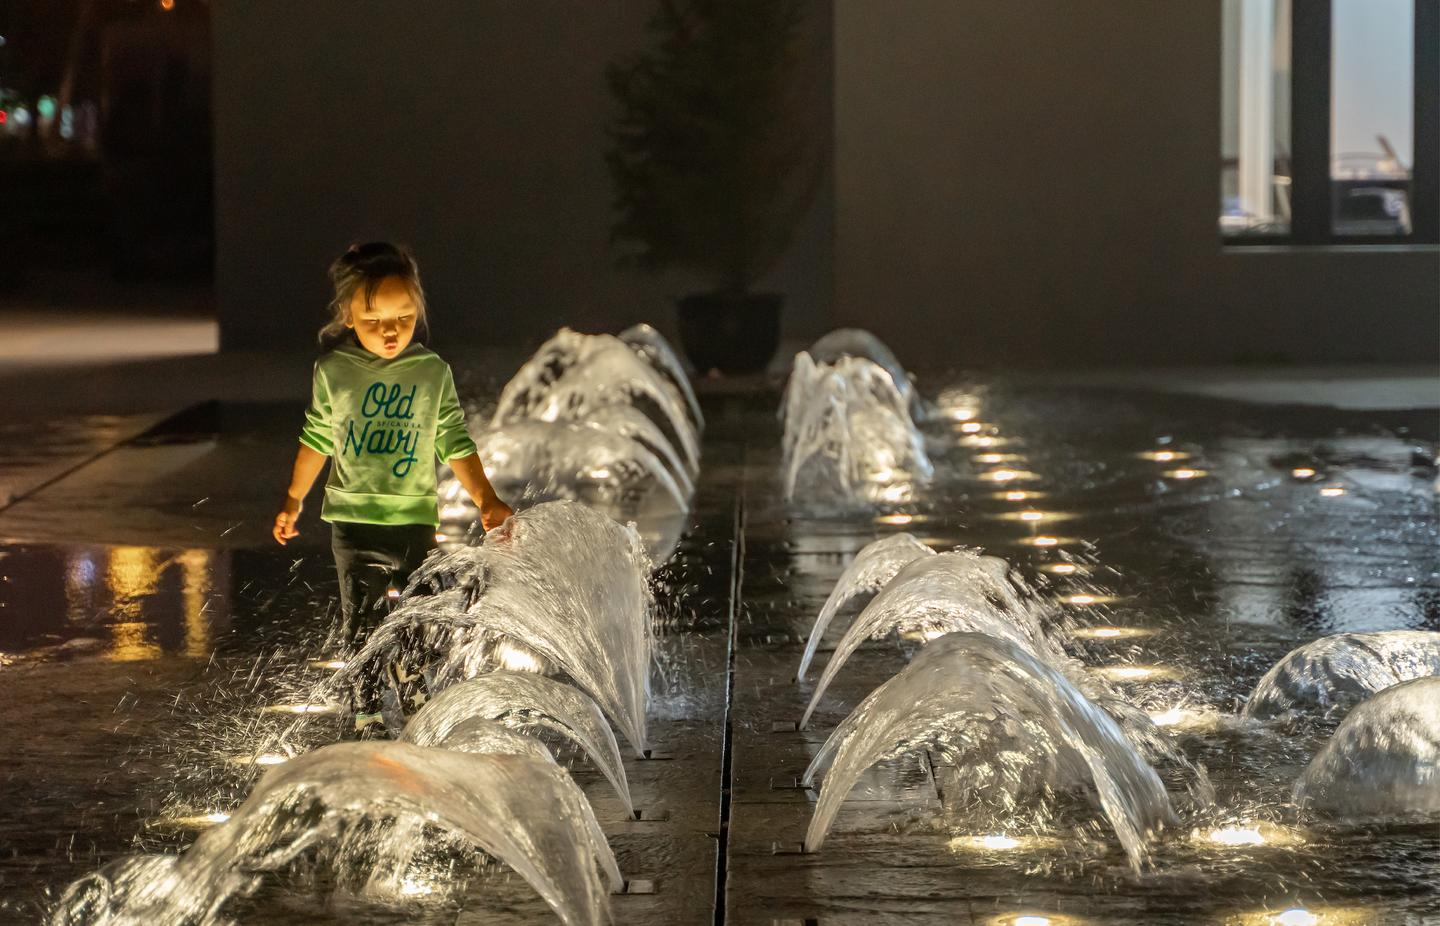 The Xuhui Runway Park includes a children's fountain area built into the old runway